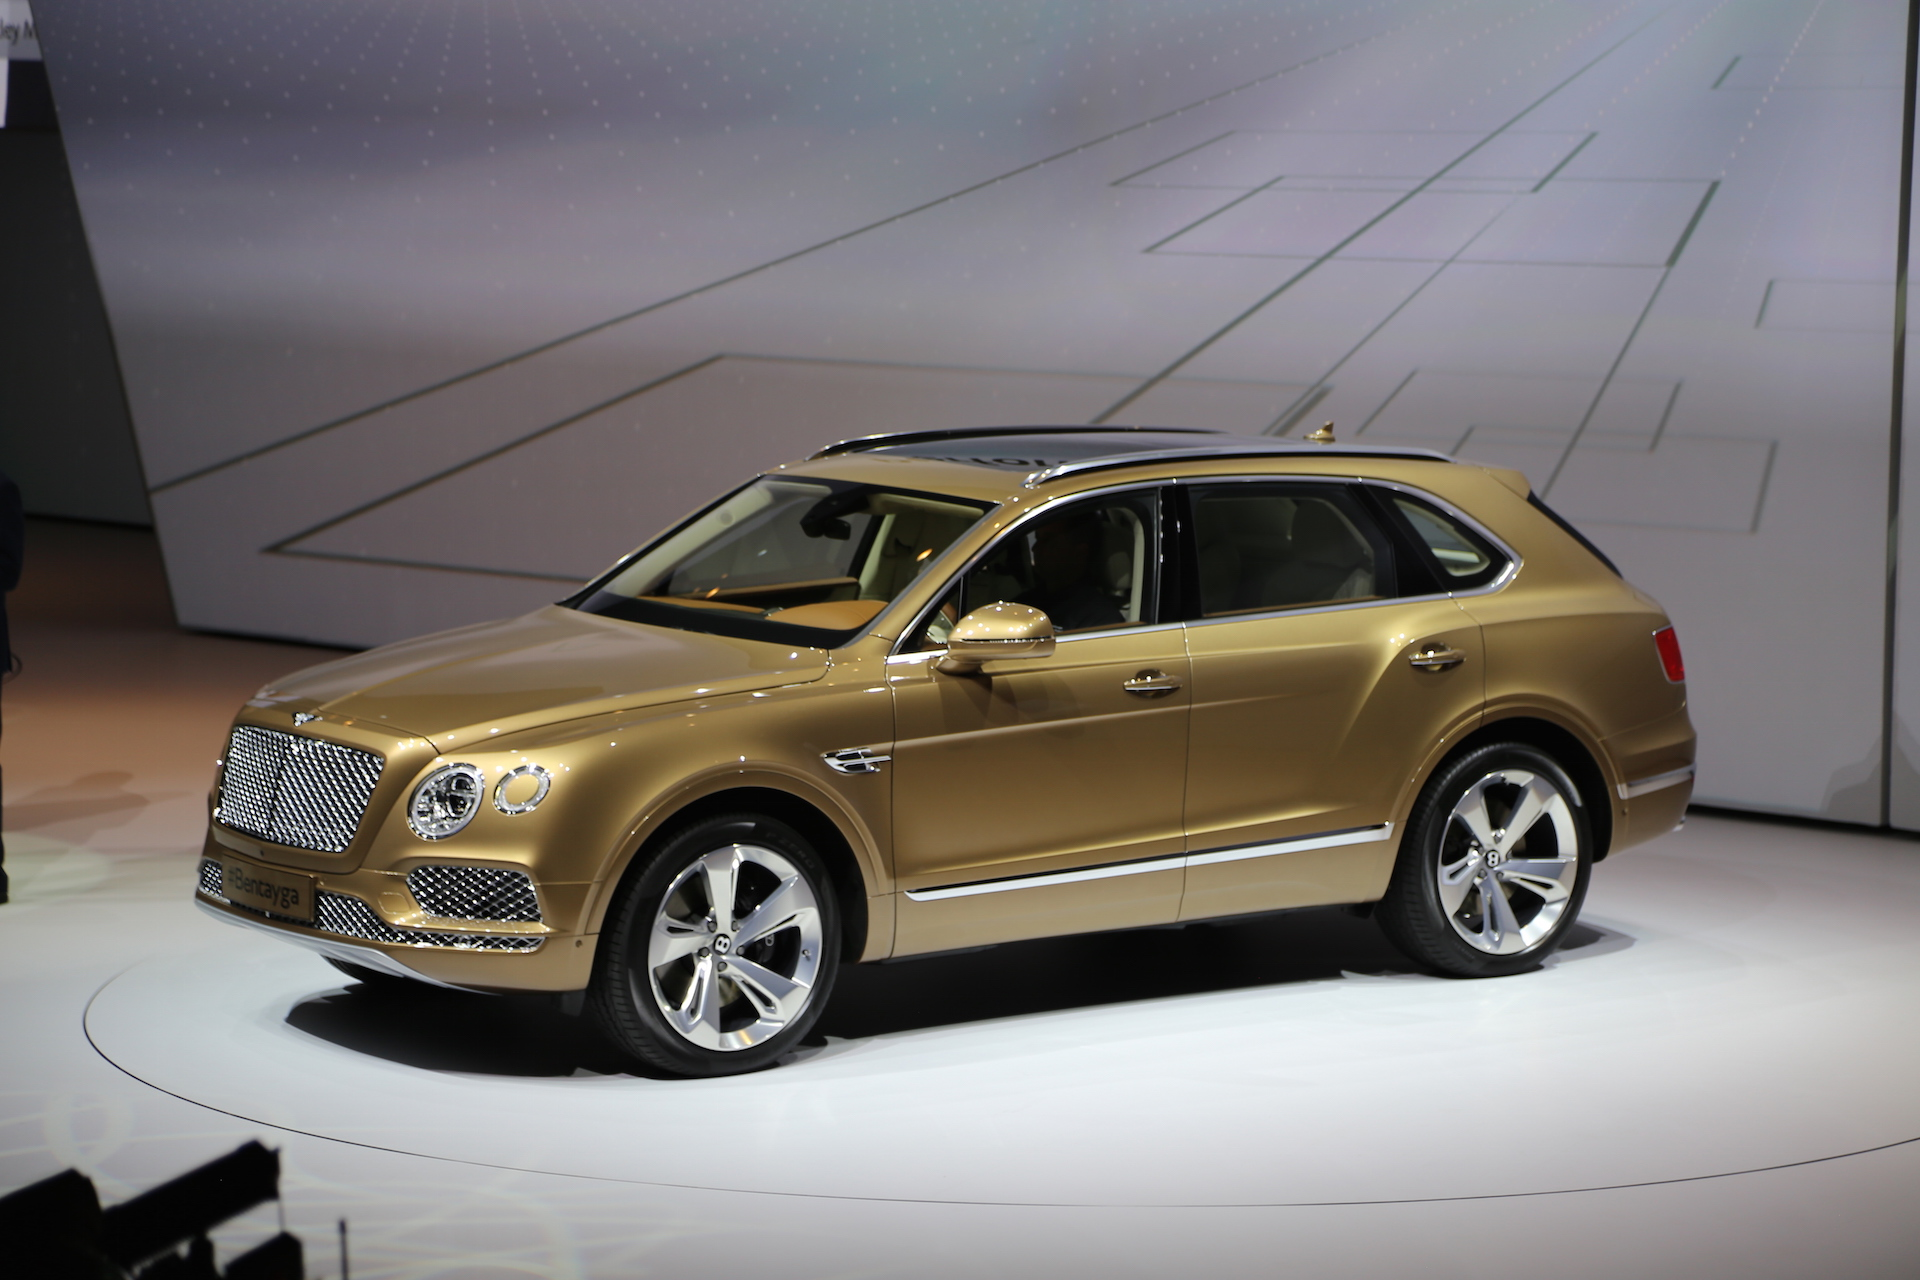 review gt it coupe much to new bentley parkers how insure jeep continental is